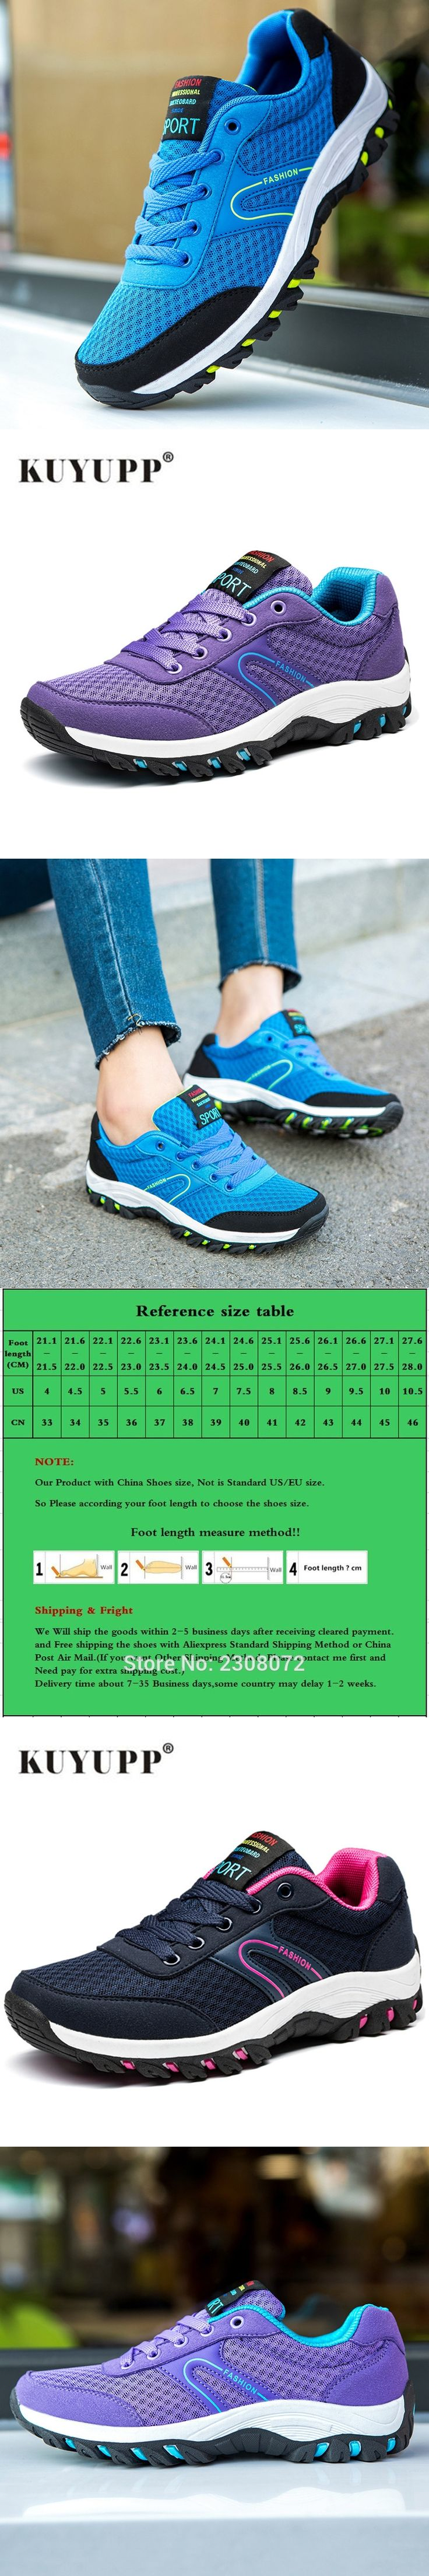 Women Hiking Shoes Waterproof Climbing Shoes Anti-Slip Trekking Shoes Outdoor Mixed Color Slip-on Sport Shoes 2017 Spring B11